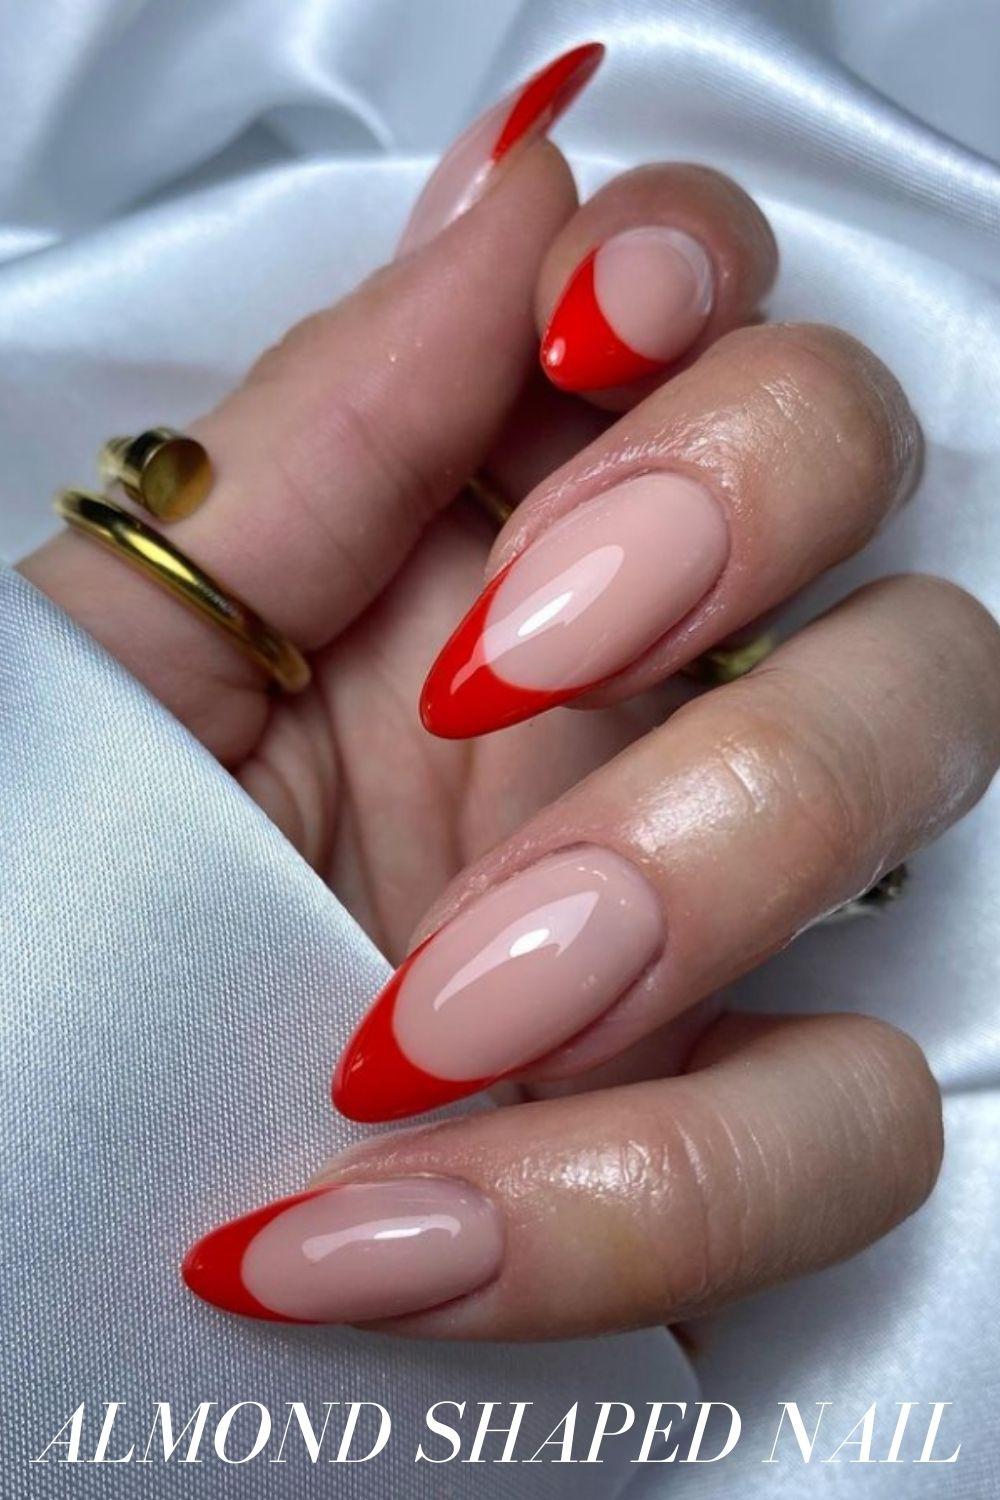 Red and pink almond nails designs